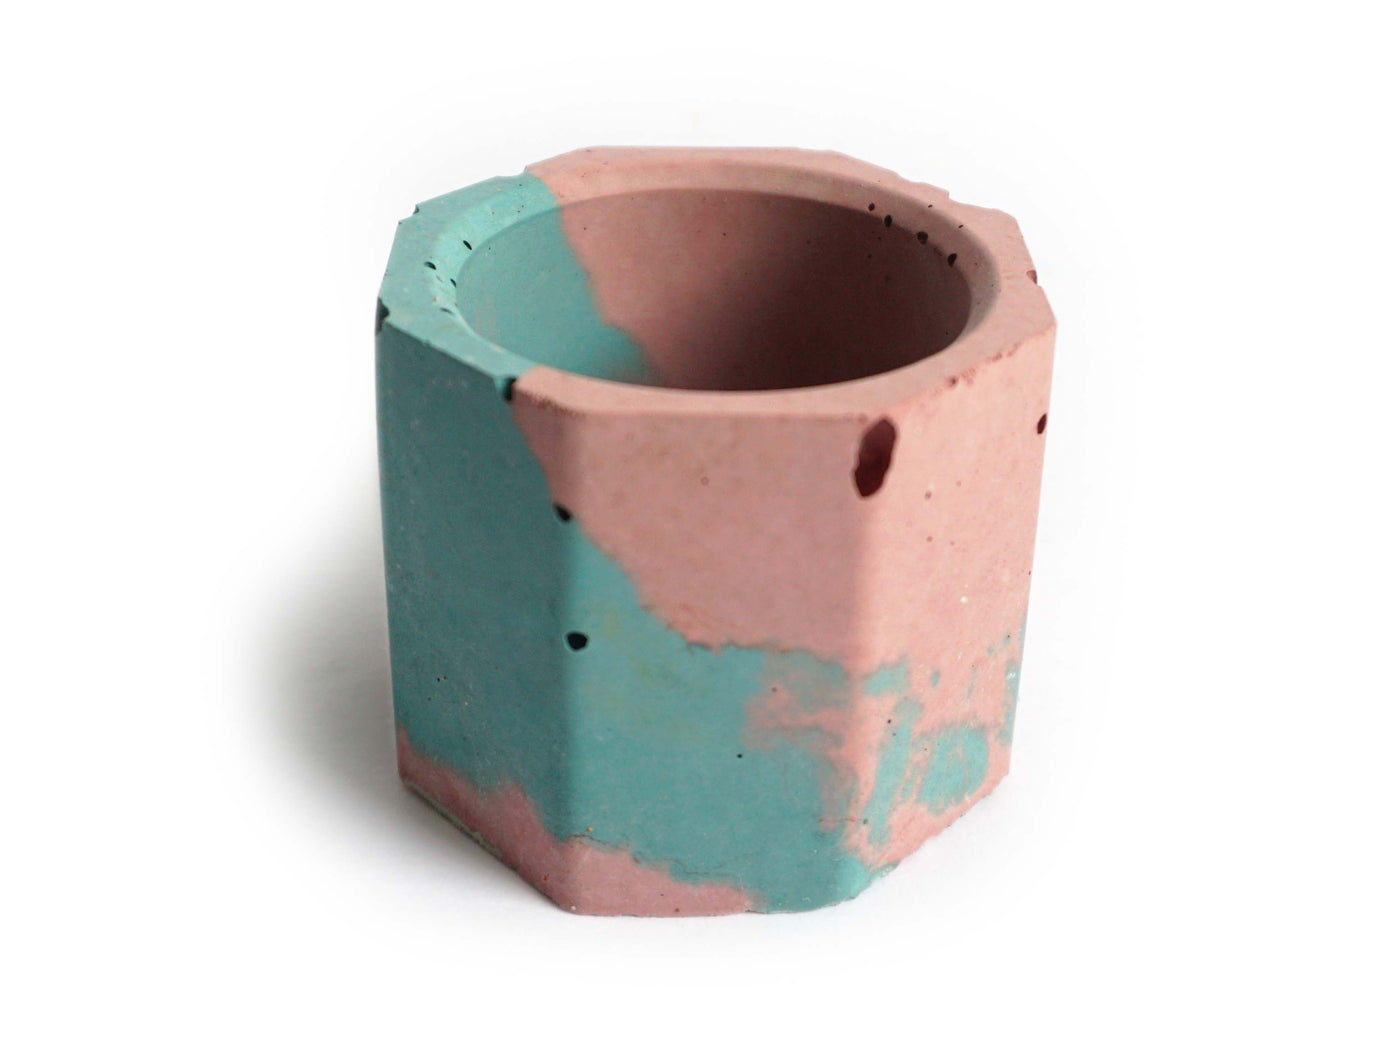 Tiny Hexagon Vessel - Studio Emma